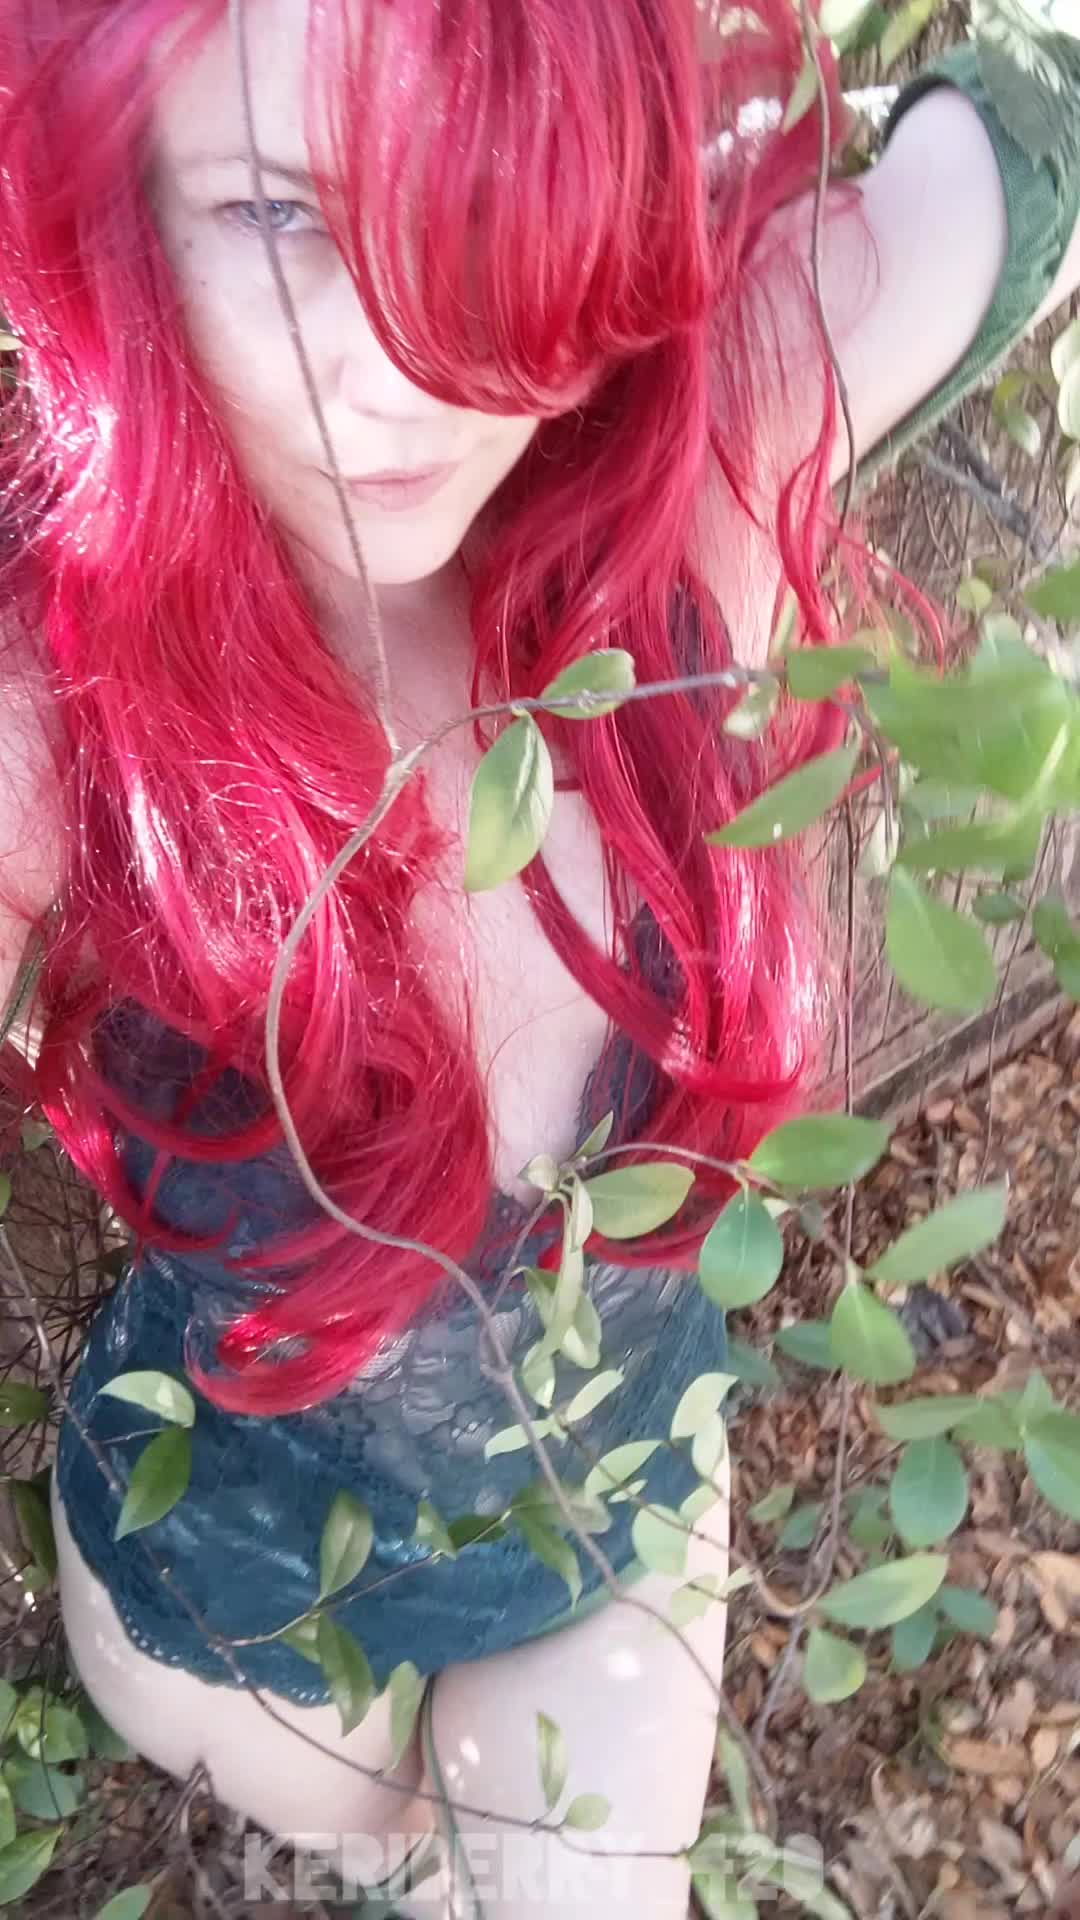 Cum into my garden🌿[Self] Keri Berry as Poison Ivy... Just trying this outfit on, no makeup done yet 😁